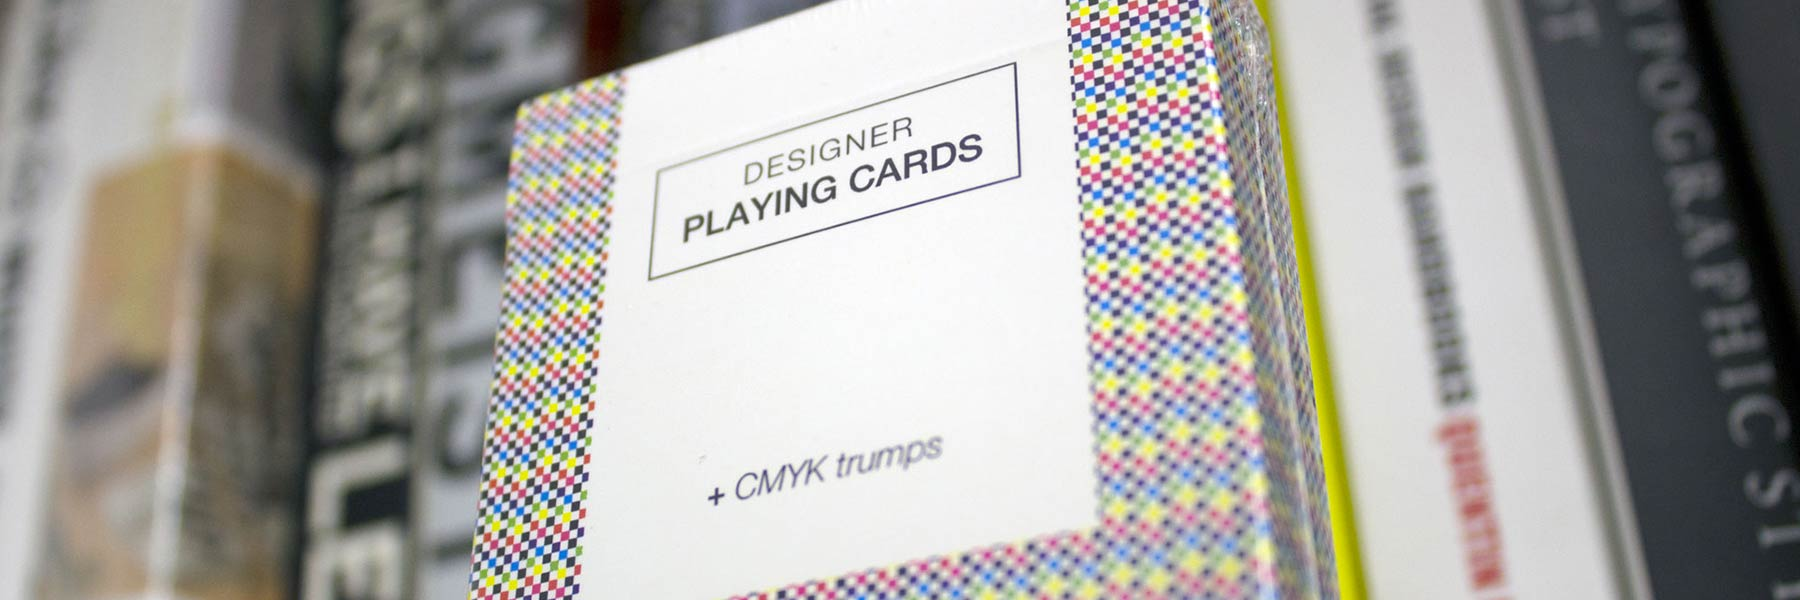 jamty-games-cmyk-graphic-designer-trumps-playing-cards-sealed-deck